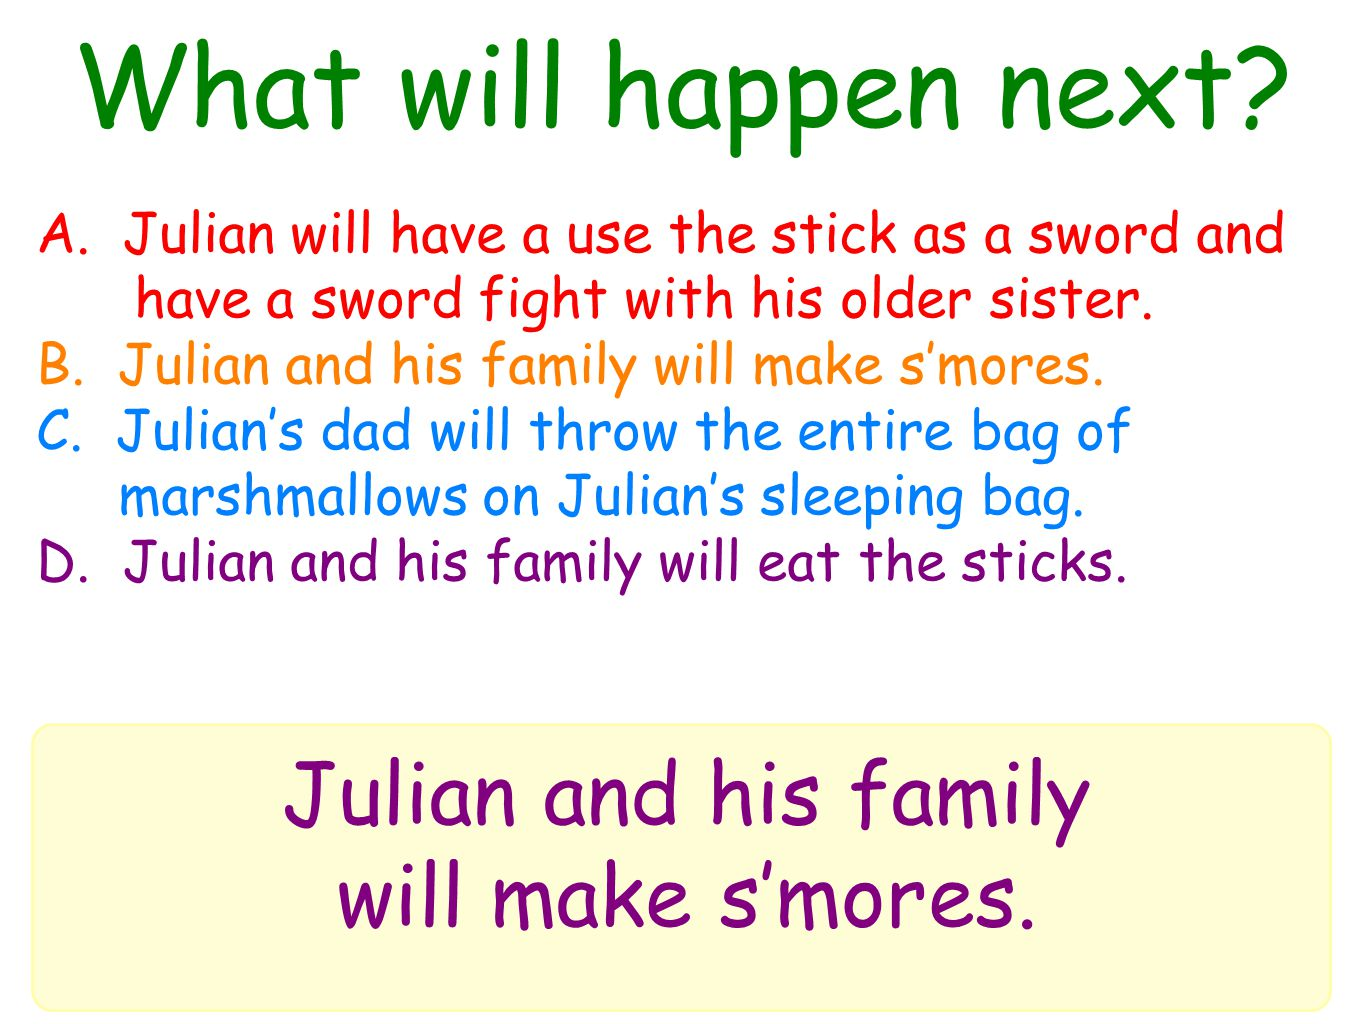 What will happen next. Julian and his family will make s'mores.